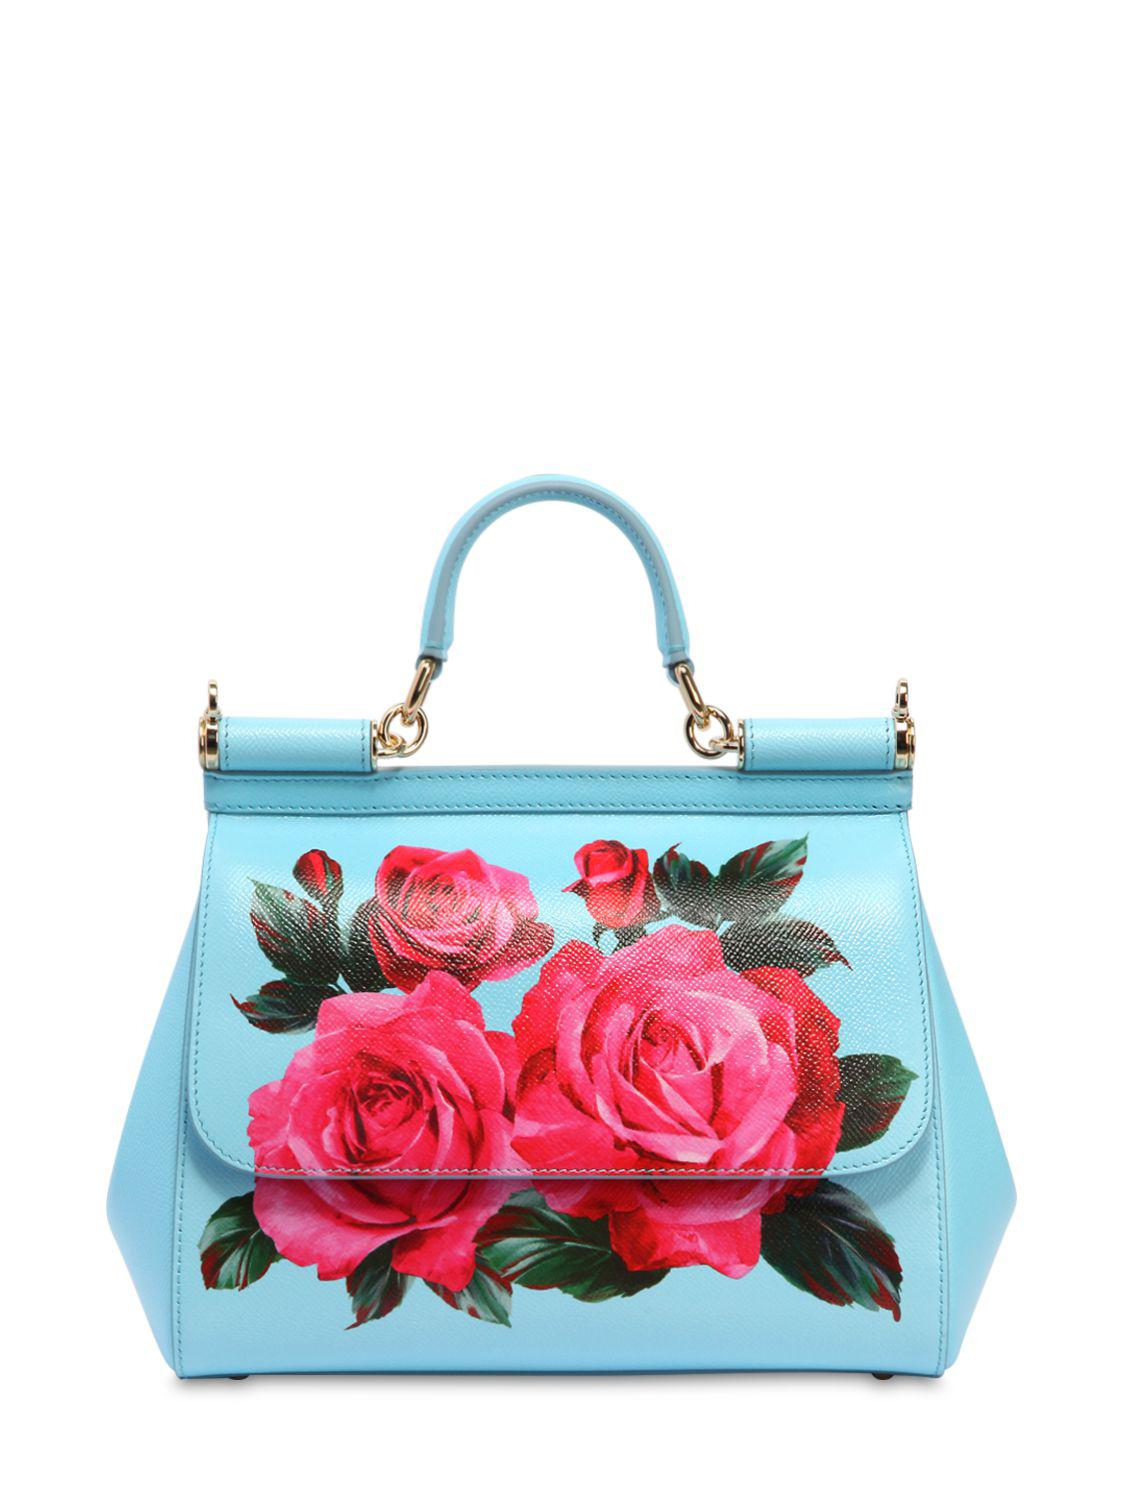 fa7a6f385c Gallery. Previously sold at: LUISA VIA ROMA · Women's Leather Bags Women's Dolce  Gabbana Sicily